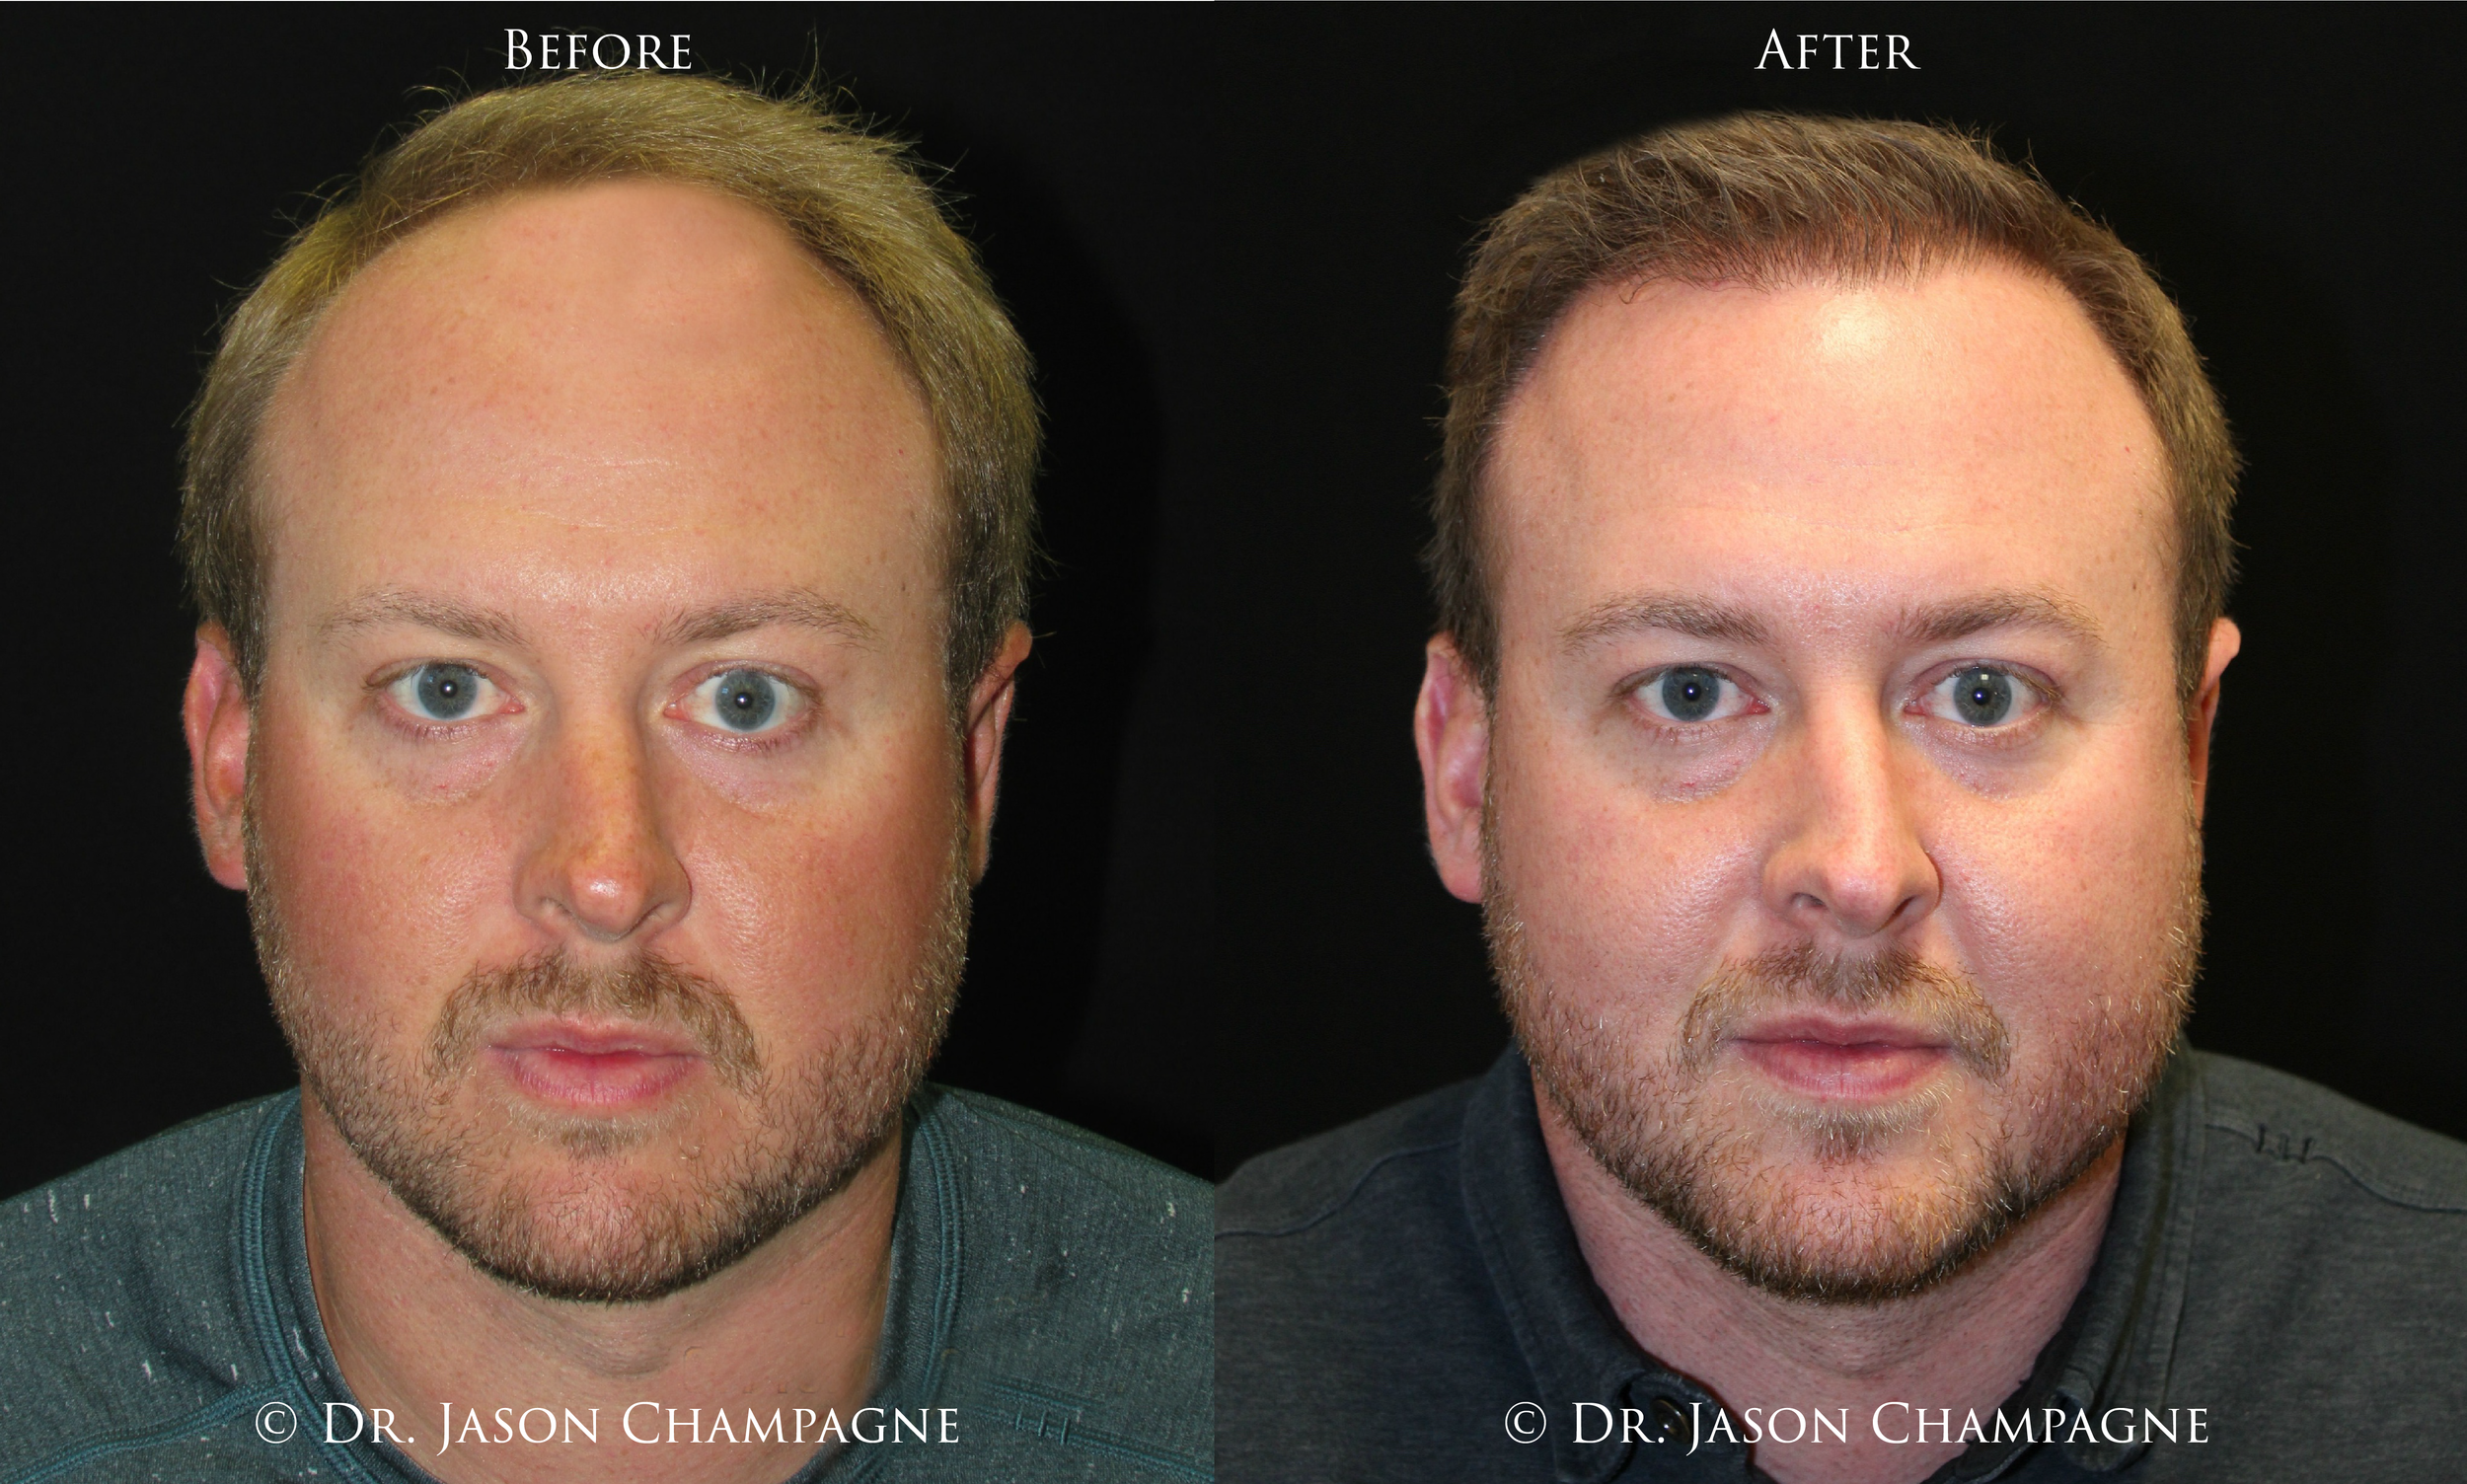 Dr-Jason-Champagne-Hair-Transplant-Before-and-After.png